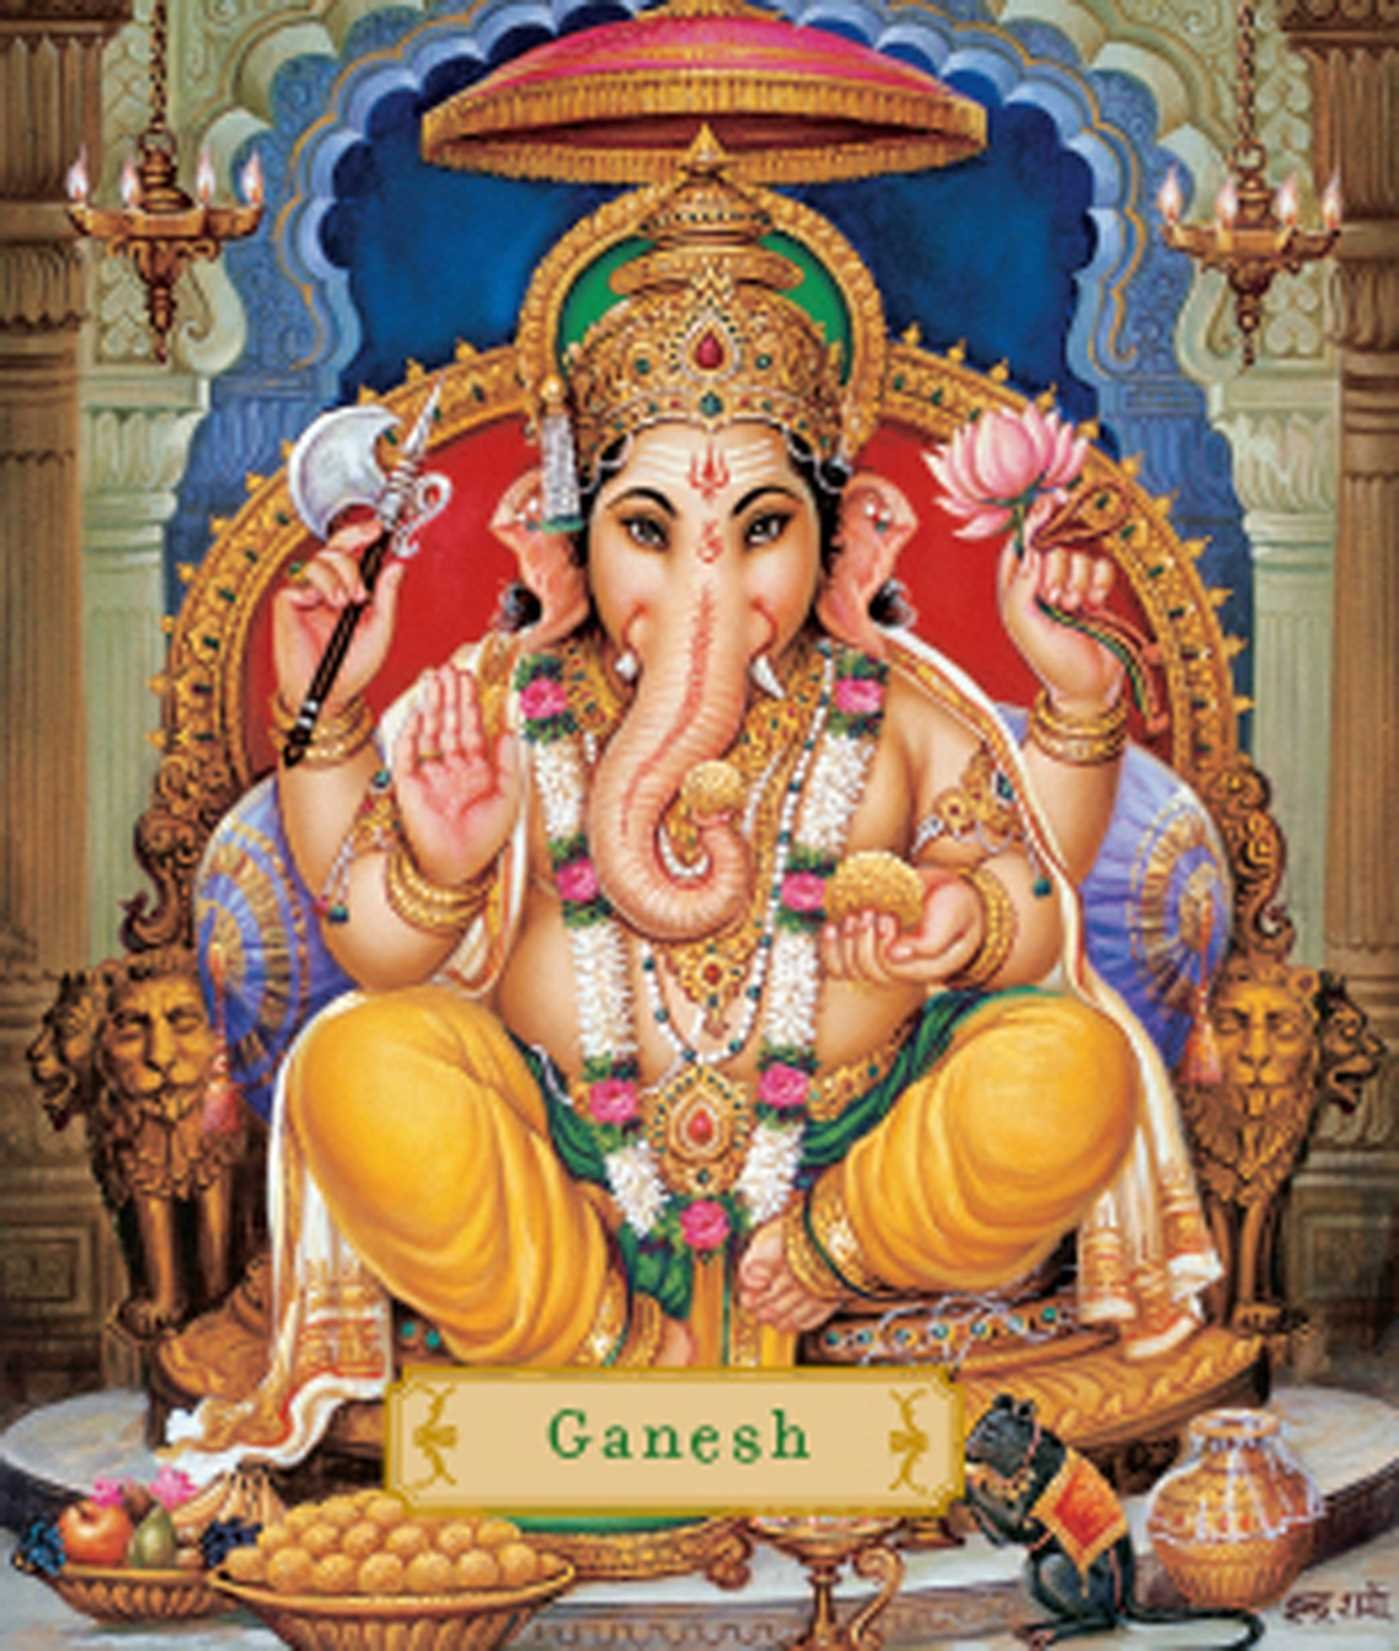 Ganesh removing the obstacles minibook james h bae ganesh removing the obstacles minibook james h bae 9781601090294 amazon books buycottarizona